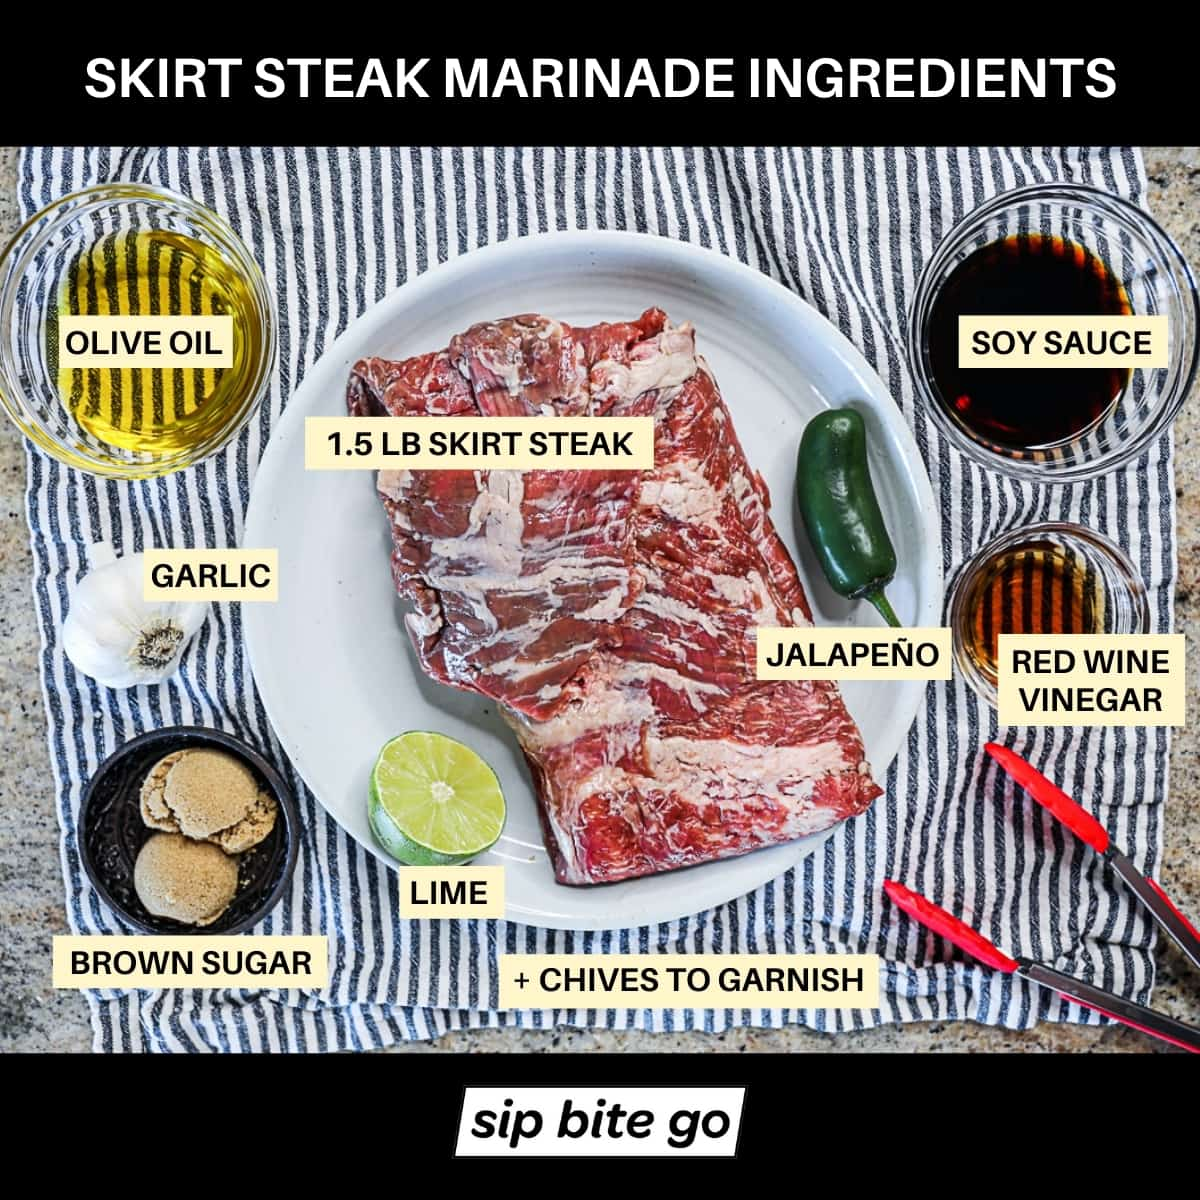 Image and chart of Grilled Skirt Steak Recipe Marinade ingredients listed next to items.